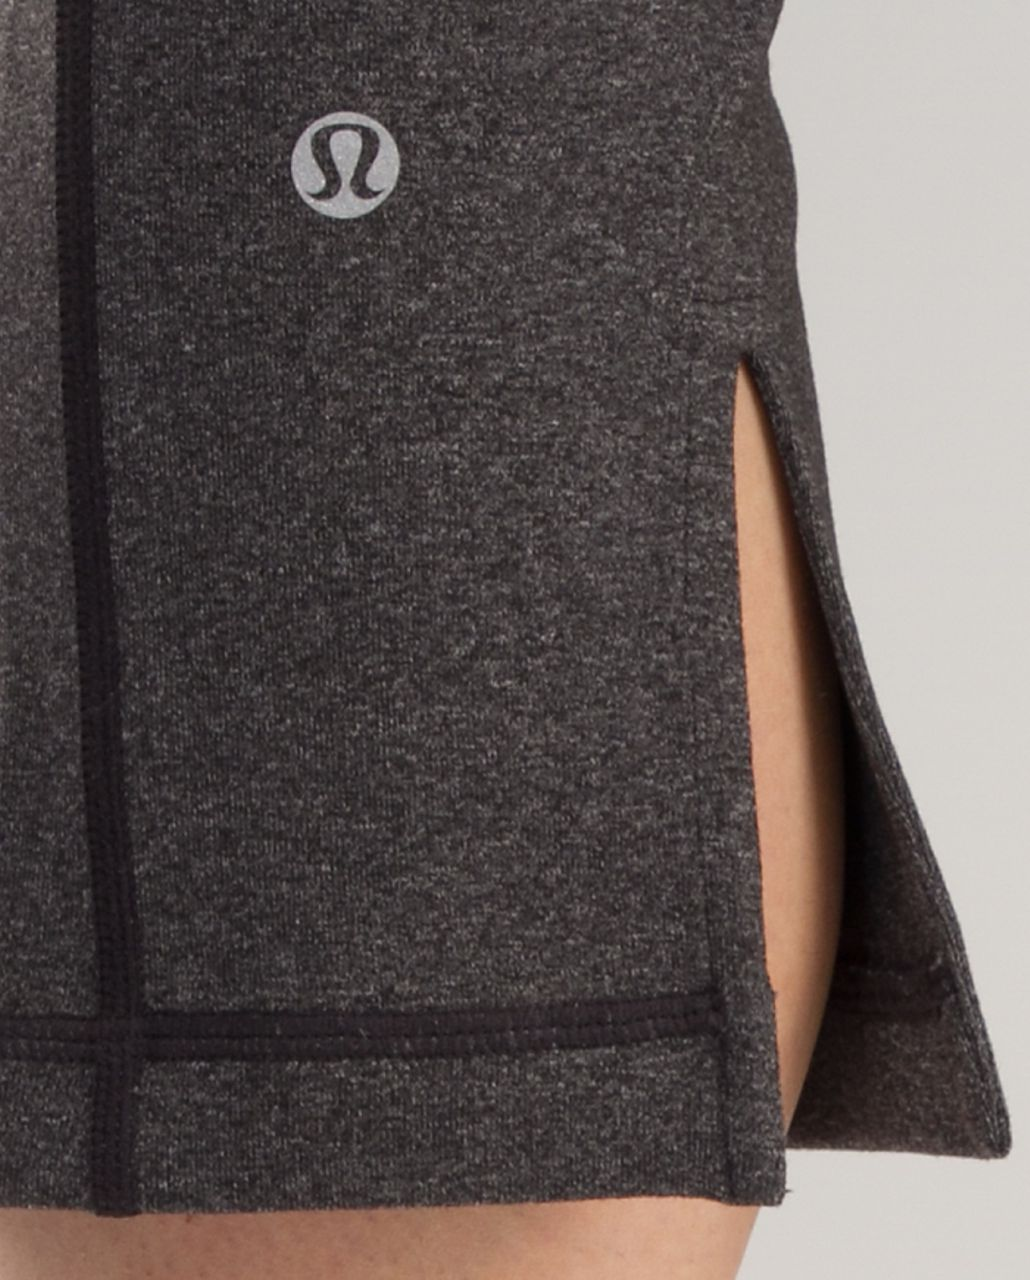 Lululemon Tadasana Slit Crop - Heathered Black /  Black